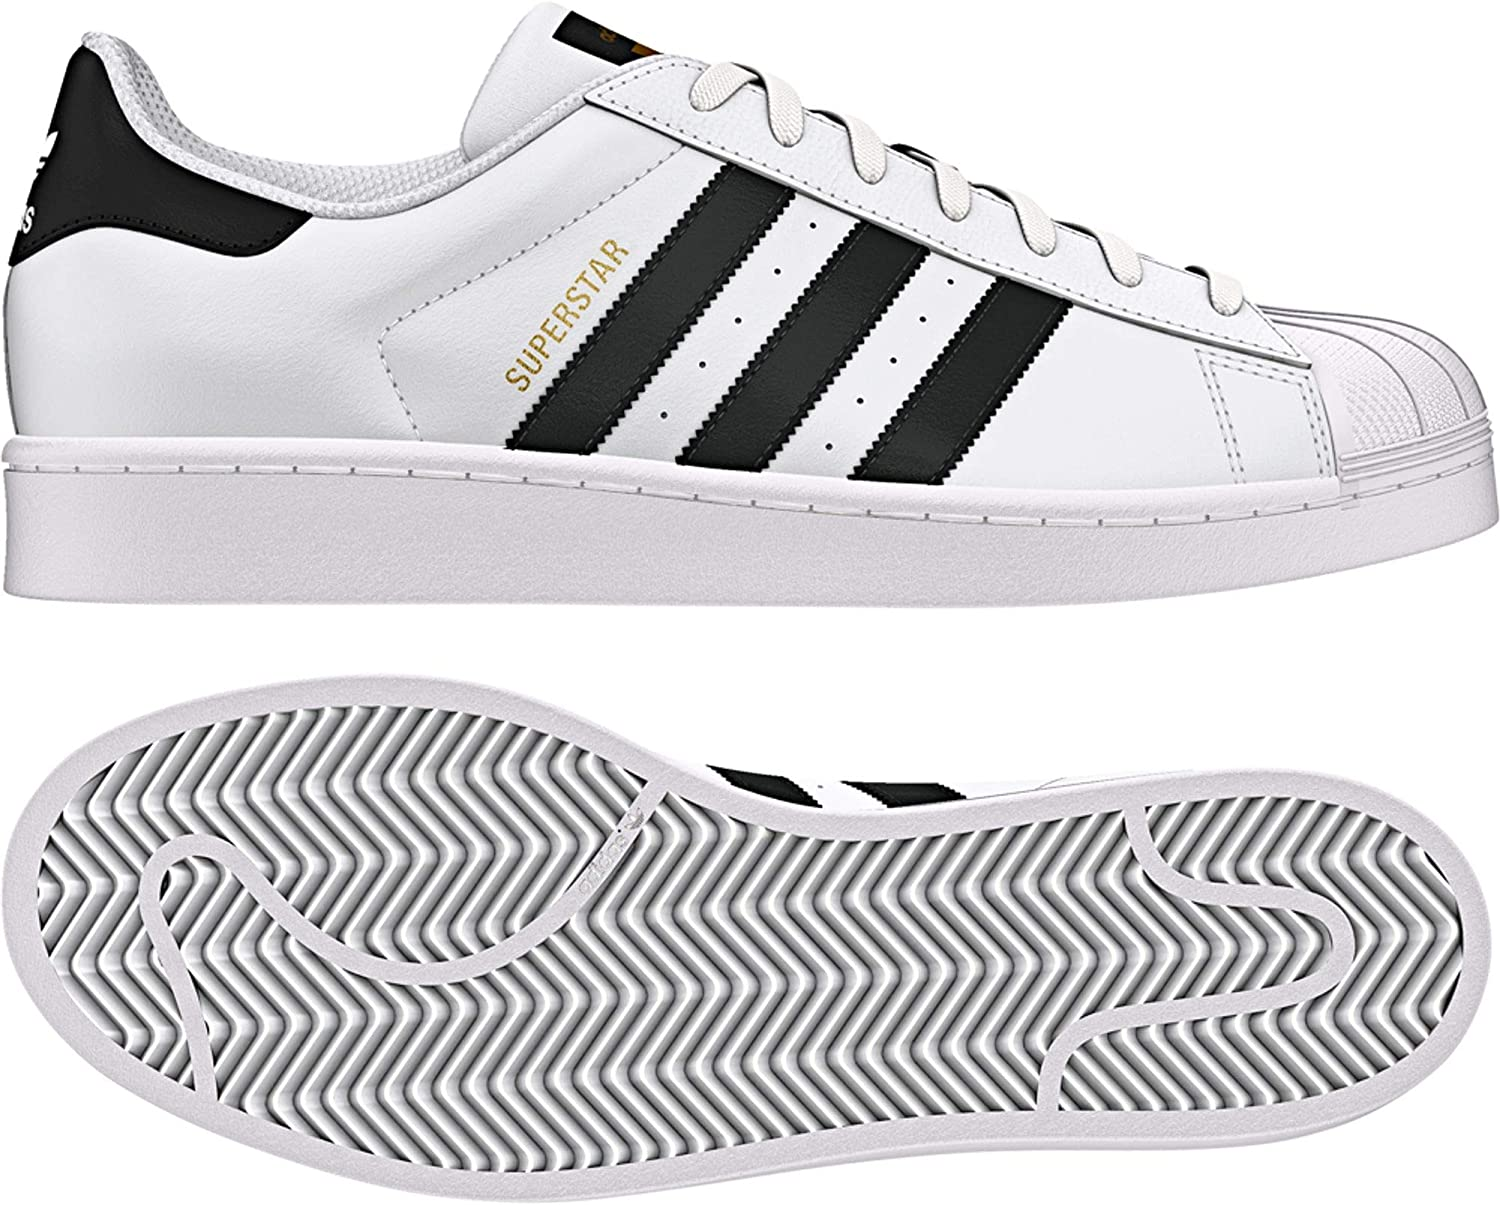 Adidas B27141, Chaussures De Basketball Homme Cloud White Core Black